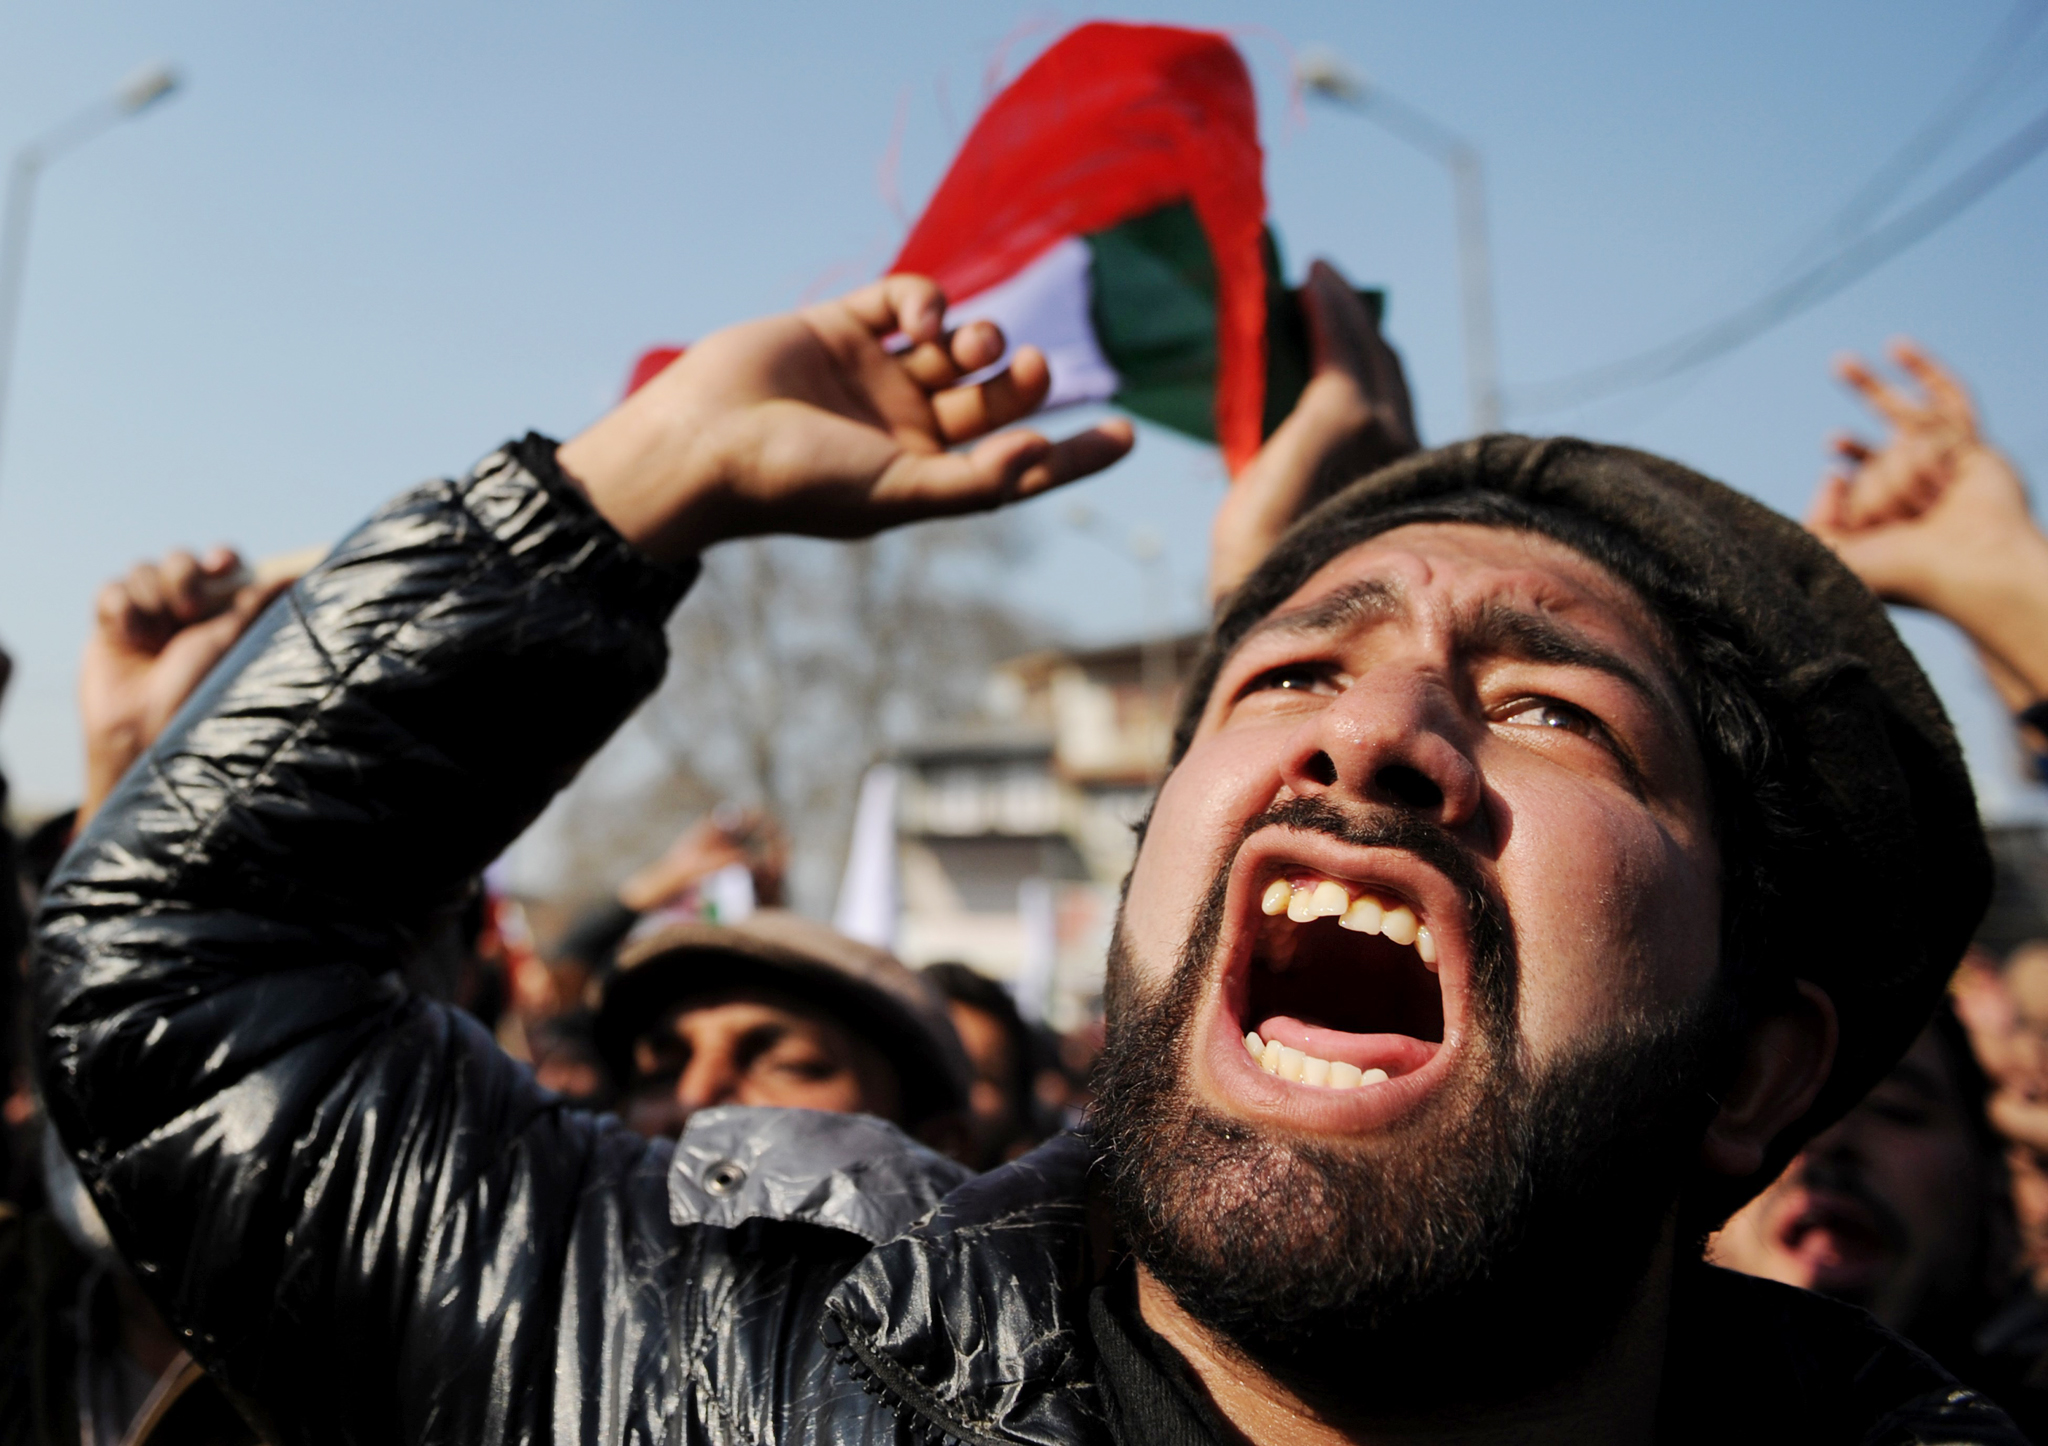 Supporters of the Jammu and Kashmir Libr...Supporters of the Jammu and Kashmir Libration Front (JKLF) shout pro-freedom slogans during a protest in Srinagar on January 21, 2016. Parts of the capital of Indian-administered Kashmir remained shut and rallies were held on January 21 to mark the killing of nearly sixty people by Indian security personnel in Srinagar's Gaw Kadal area on January 21, 1990. The event was followed by a series of similar incidents in and around Srinagar causing widespread anger across the valley and gave impetus to an armed insurgency which had just started in the Muslim-majority Himalayan state. AFP PHOTO / Tauseef MUSTAFATAUSEEF MUSTAFA/AFP/Getty Images